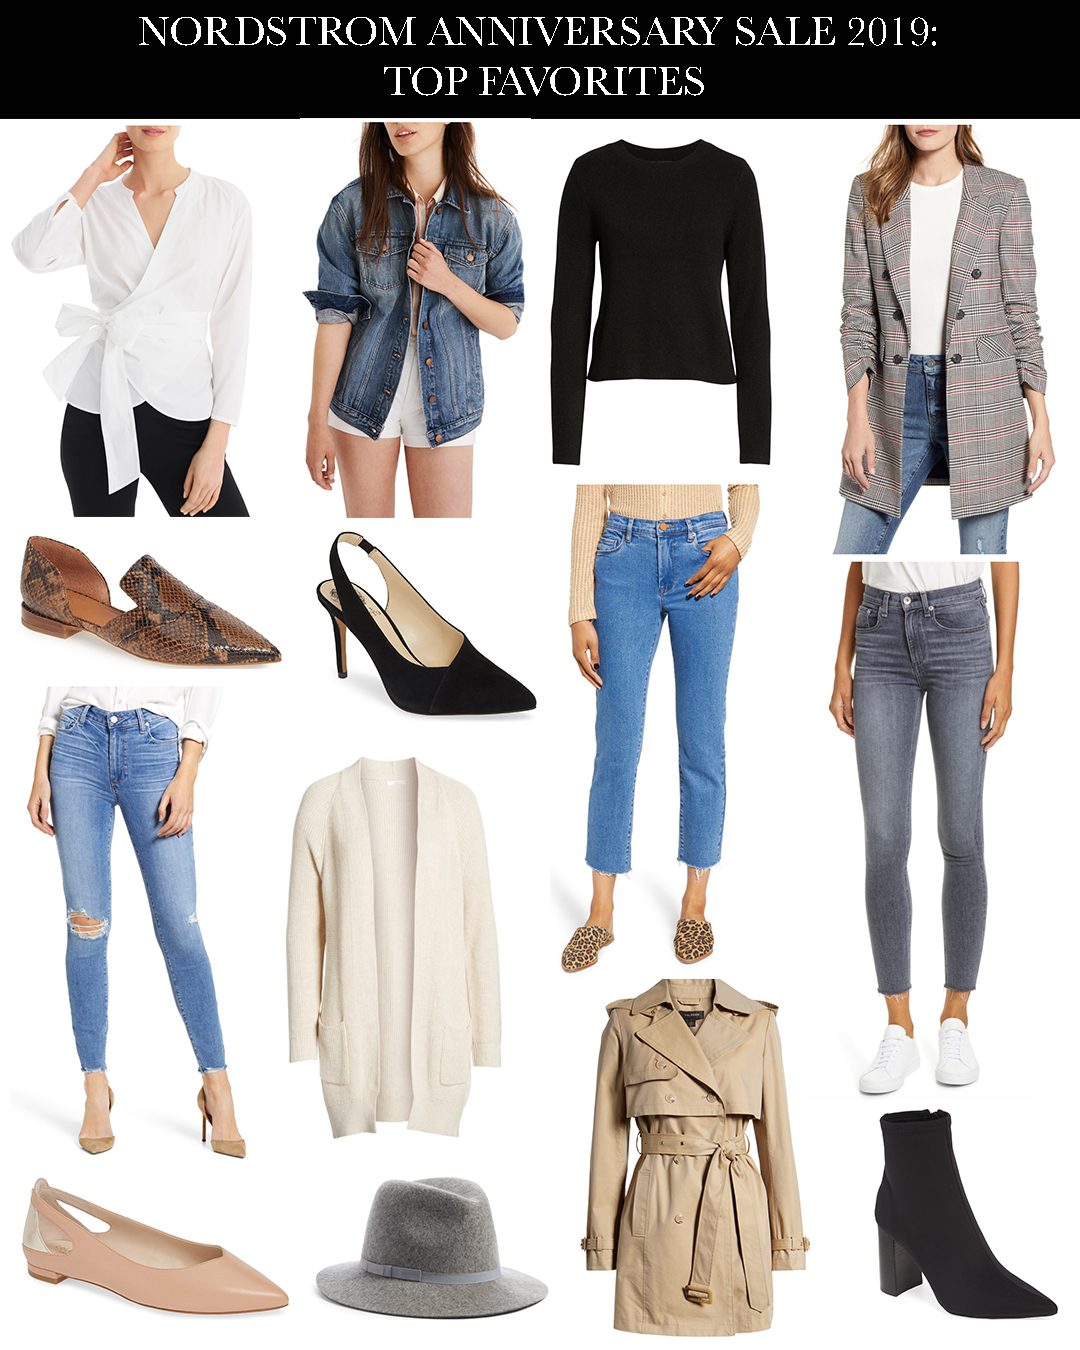 2019 Nordstrom Anniversary Sale Early Access Favorites | www.girlmeetsgold.com